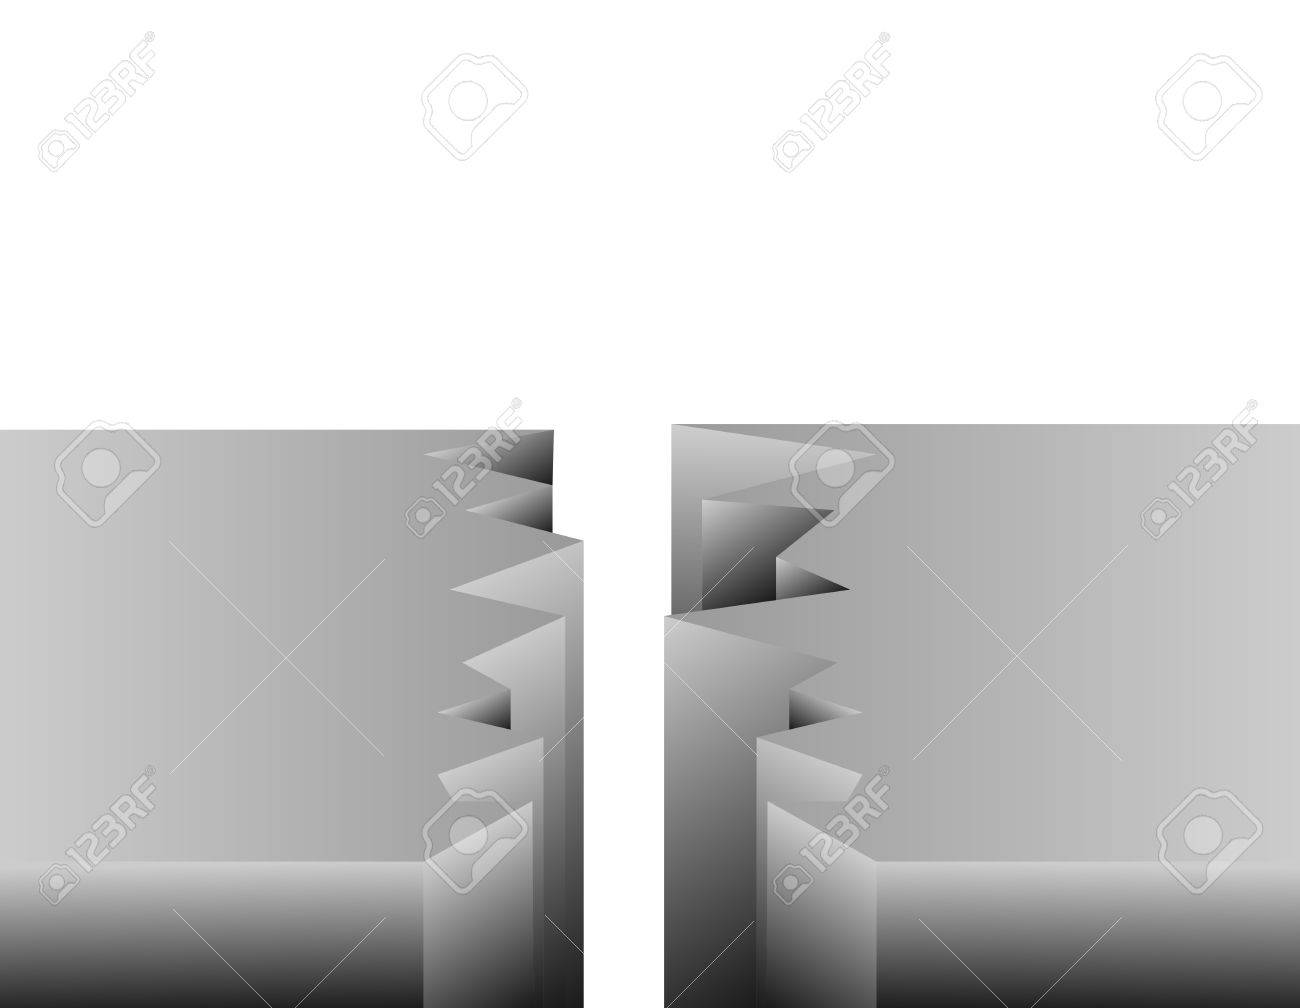 Crack Vector Stock Vector - 17777196